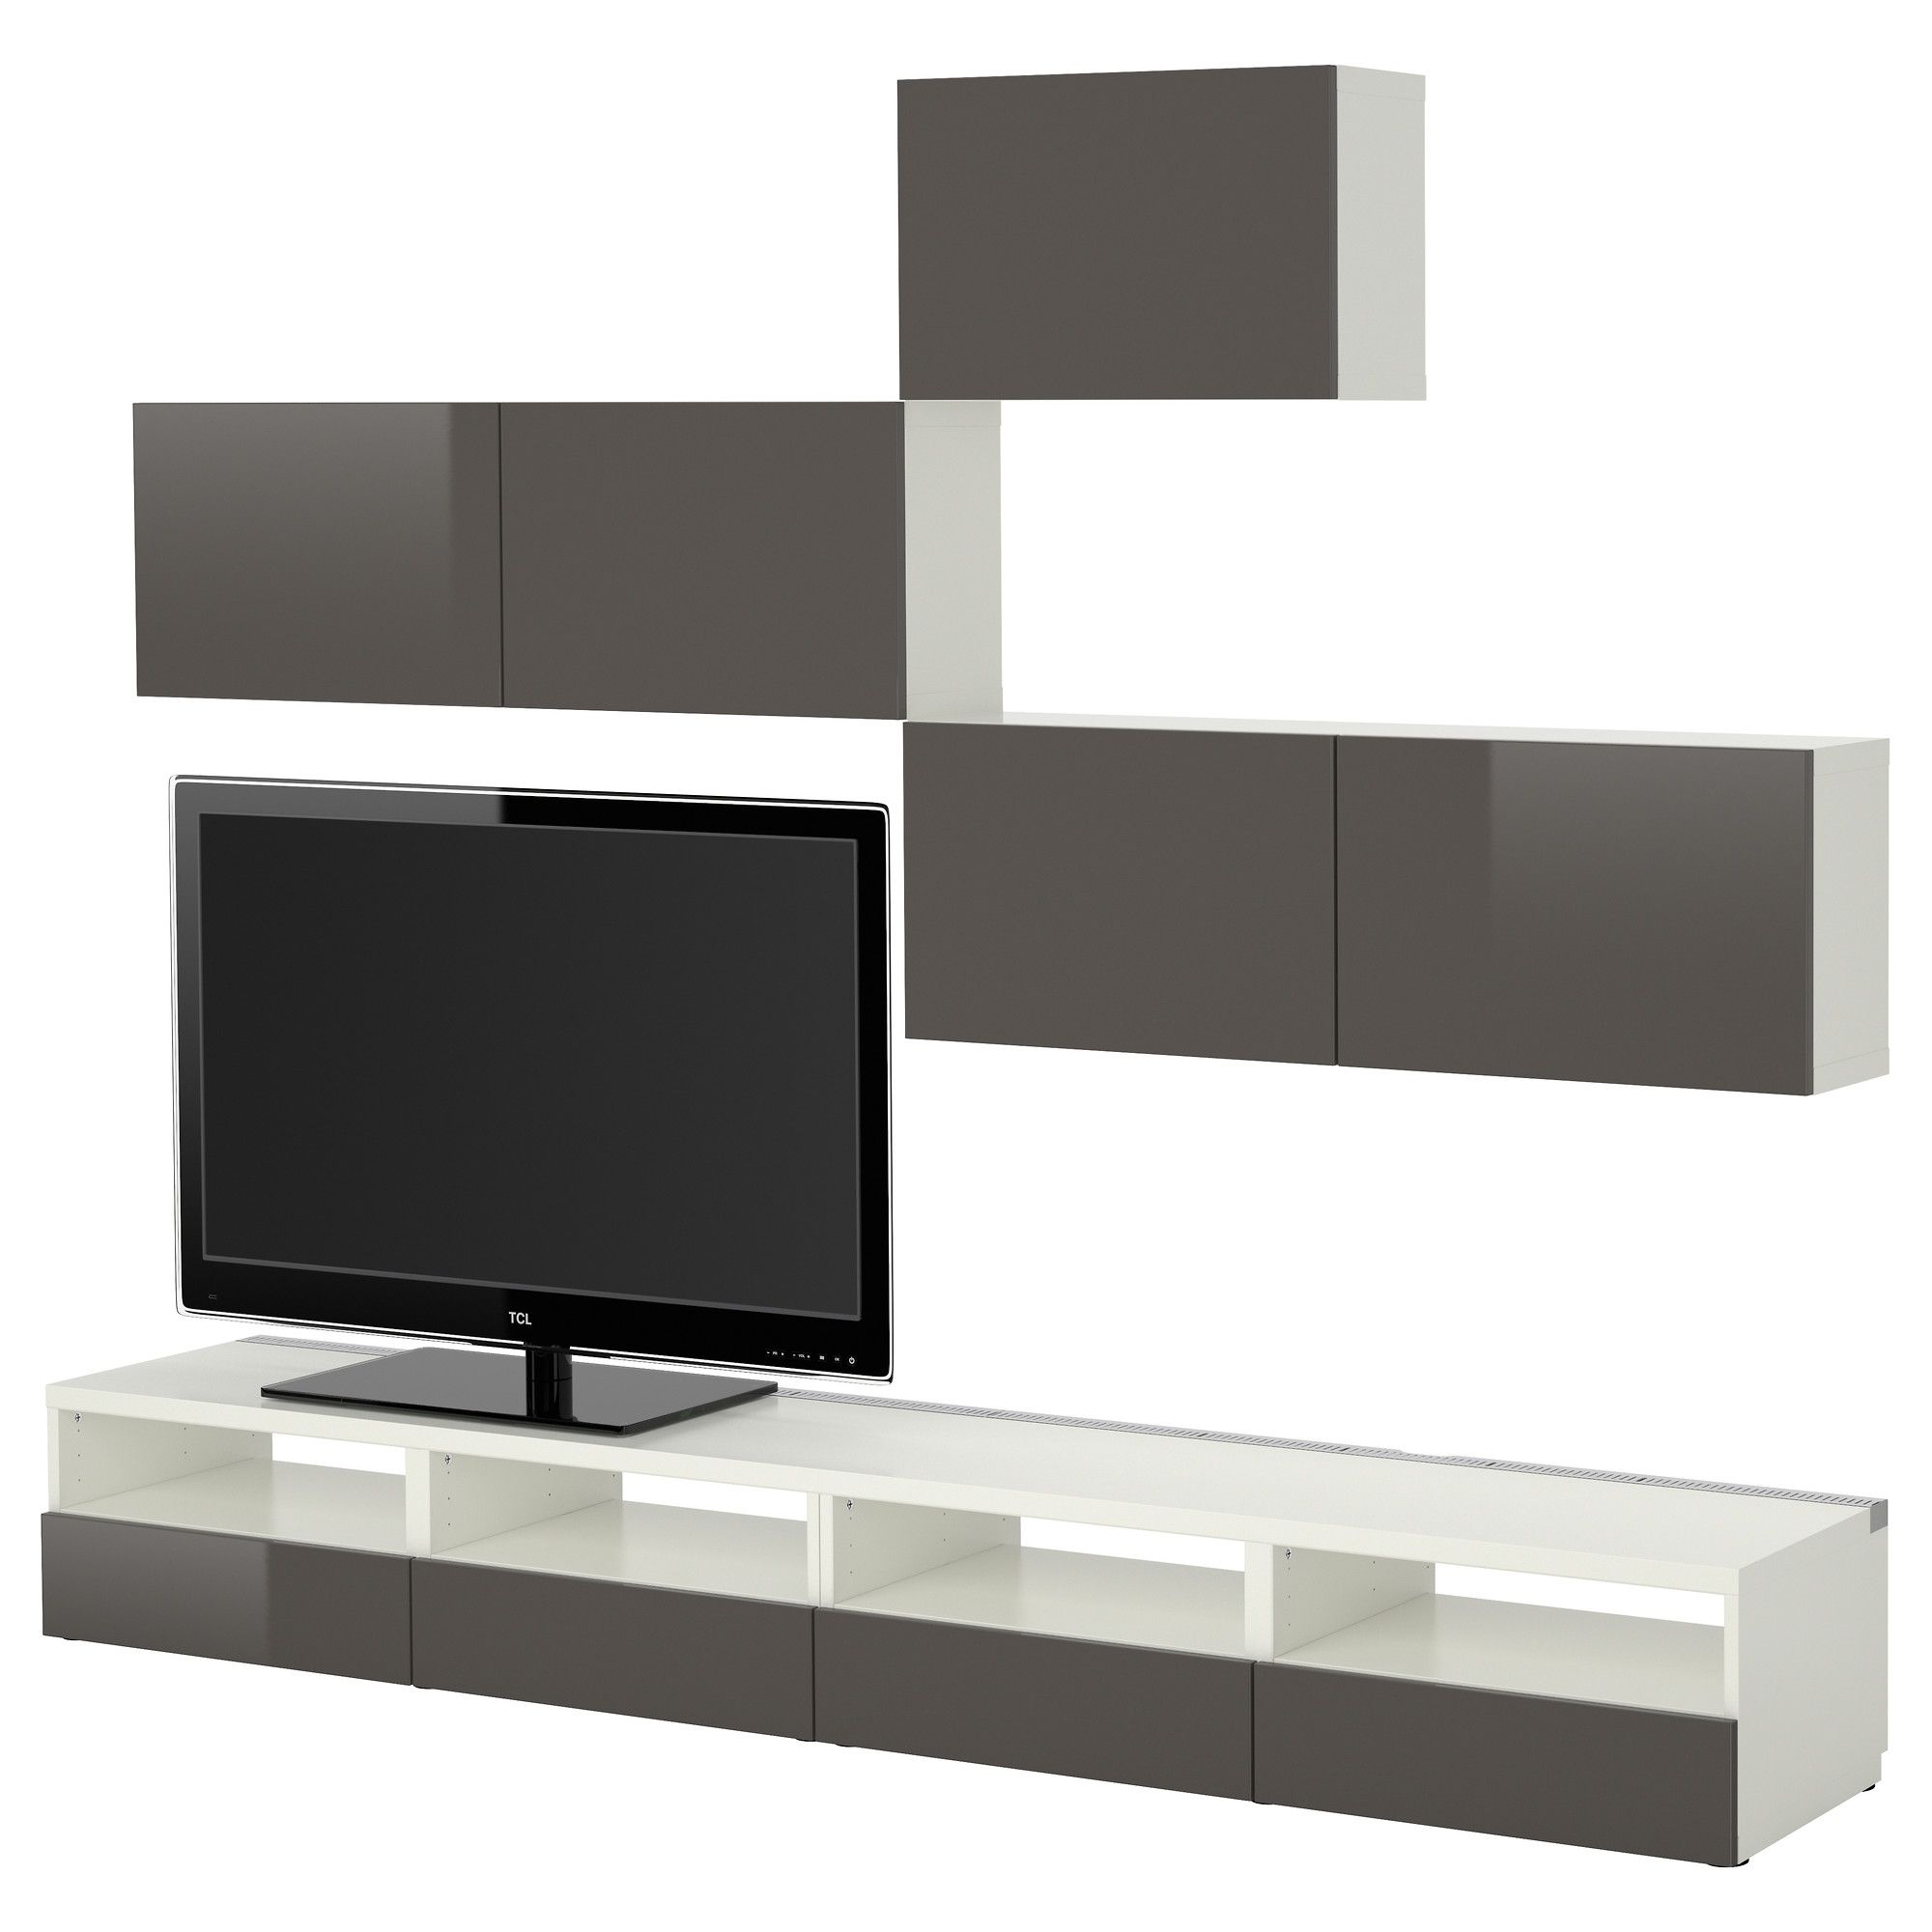 best tv storage combination white tofta high gloss gray ikea tv unit real house ideas. Black Bedroom Furniture Sets. Home Design Ideas